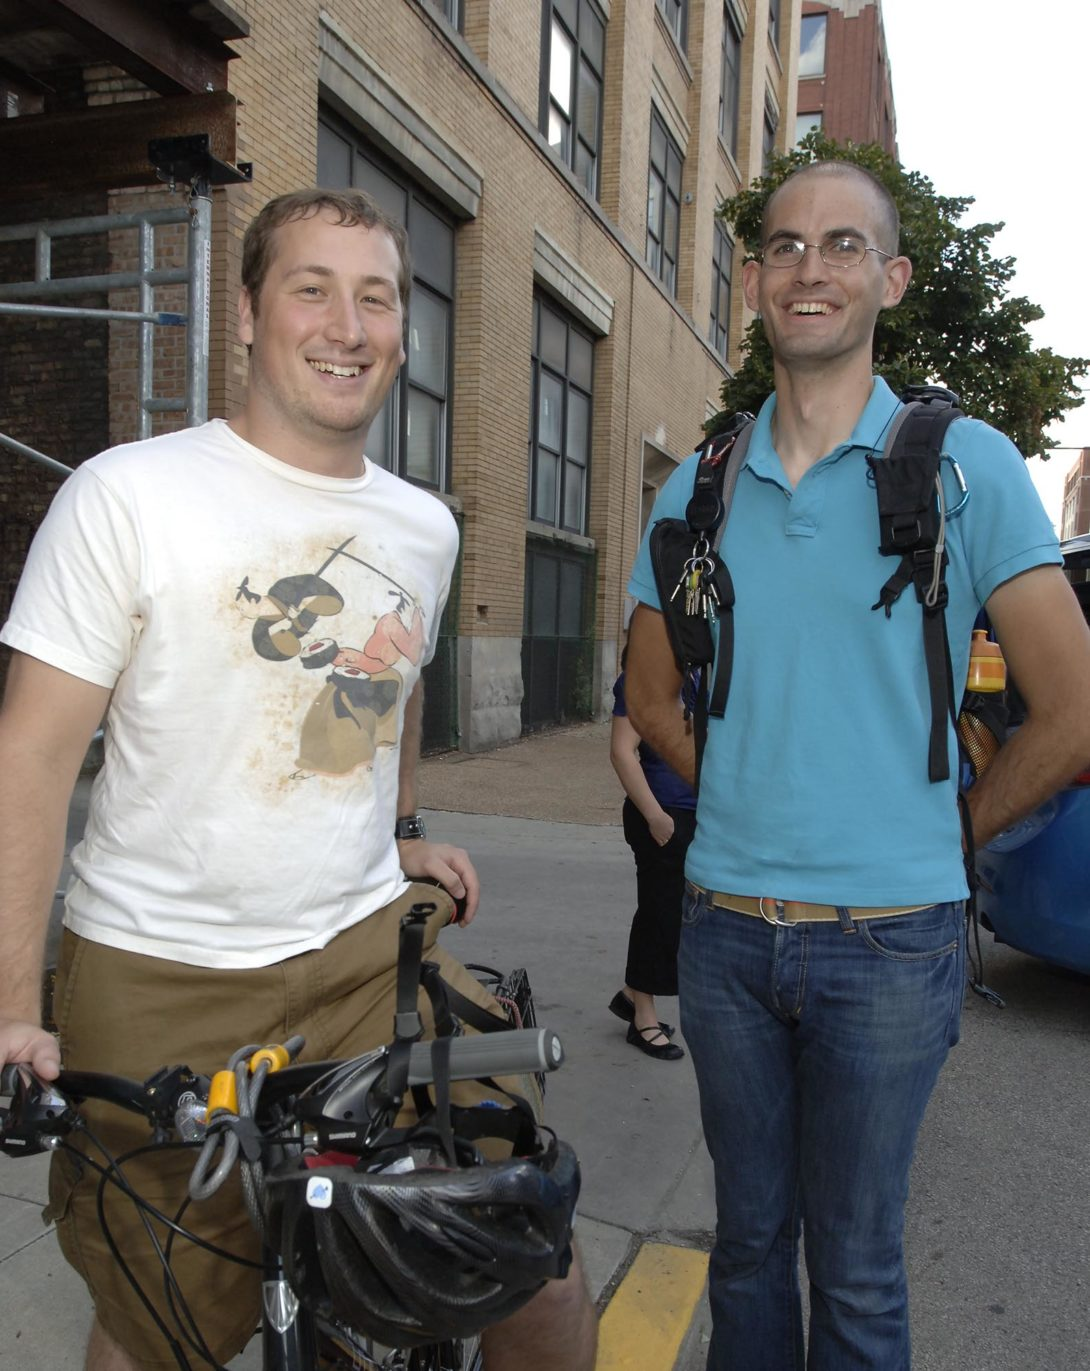 Two MUPP students on bikes